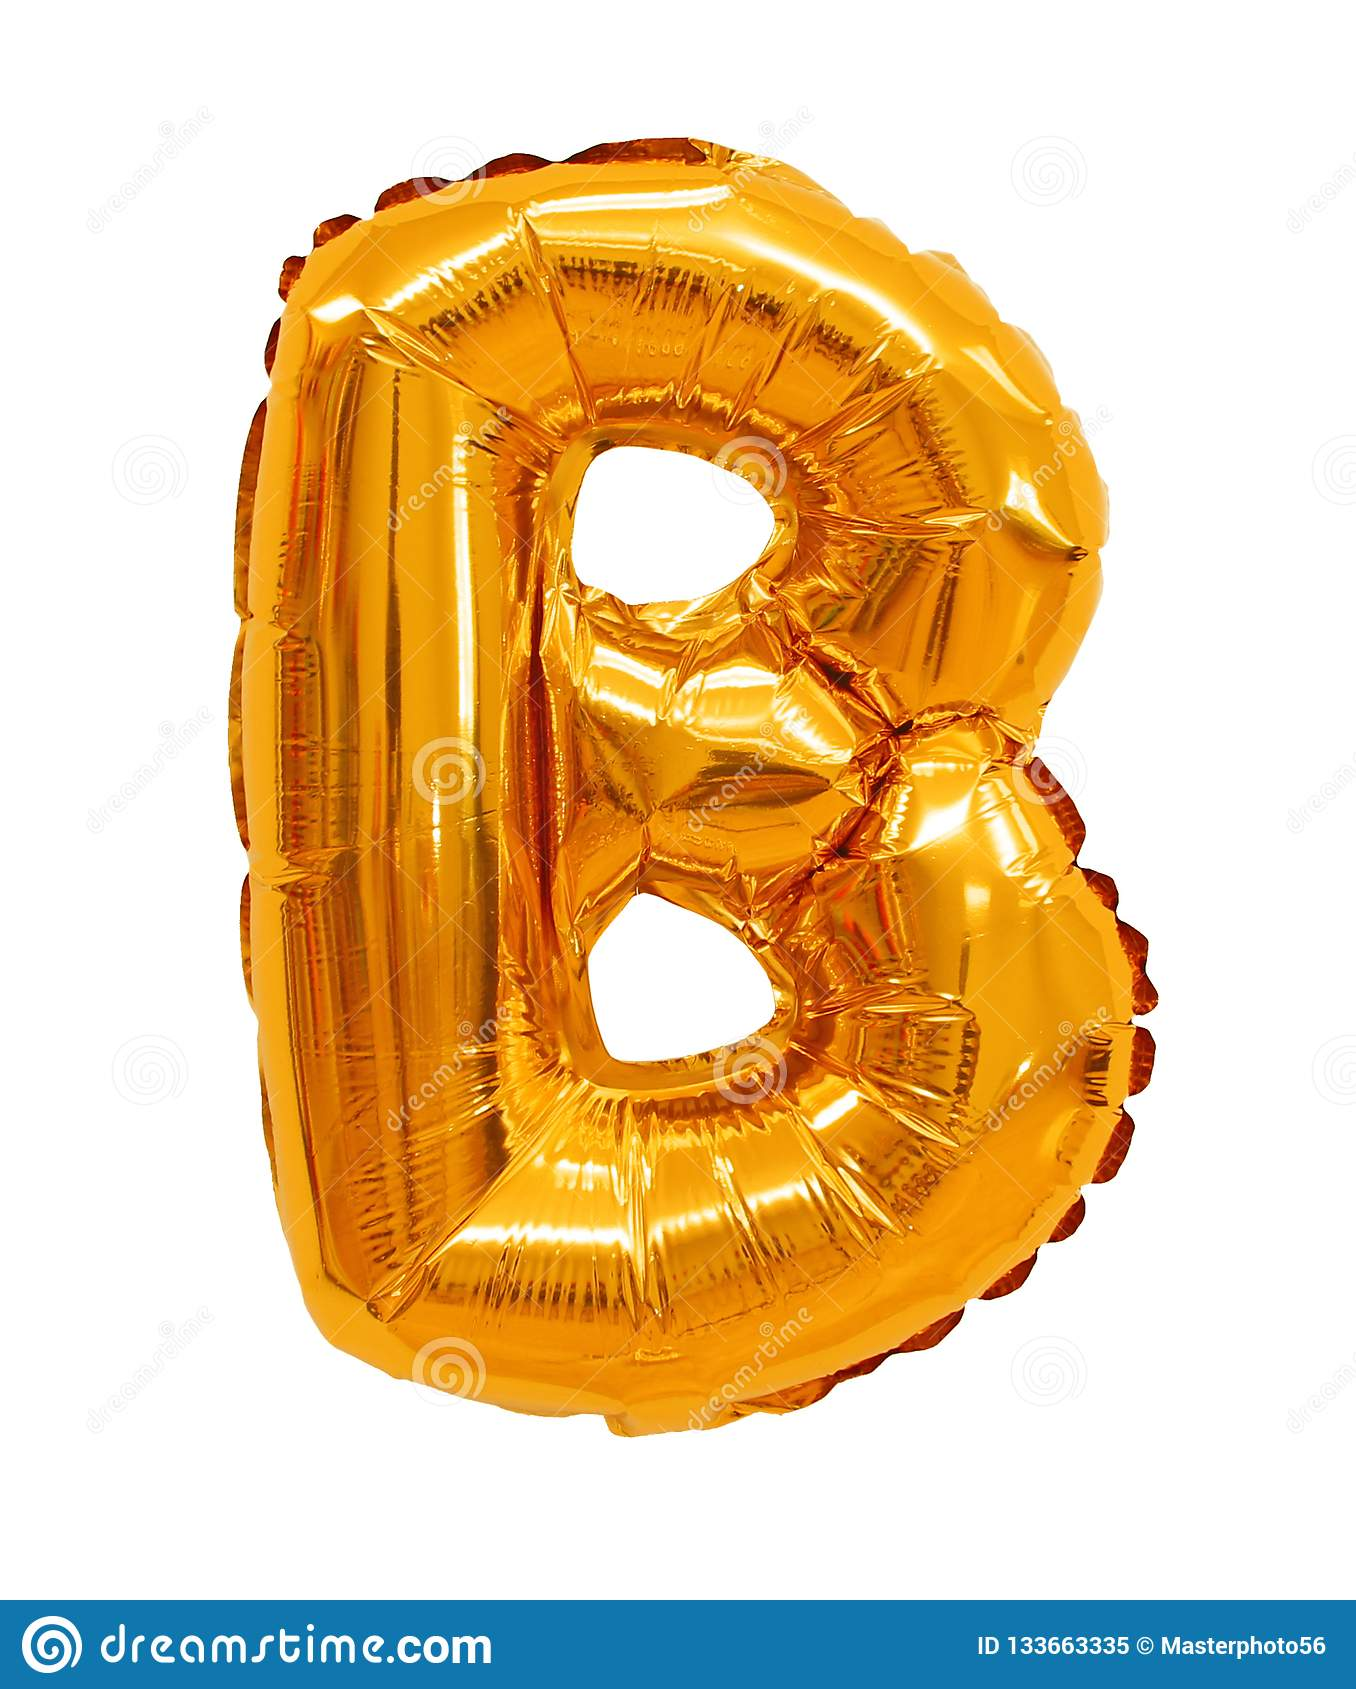 Letter B From A Balloon Orange Stock Image Image Of Symbol